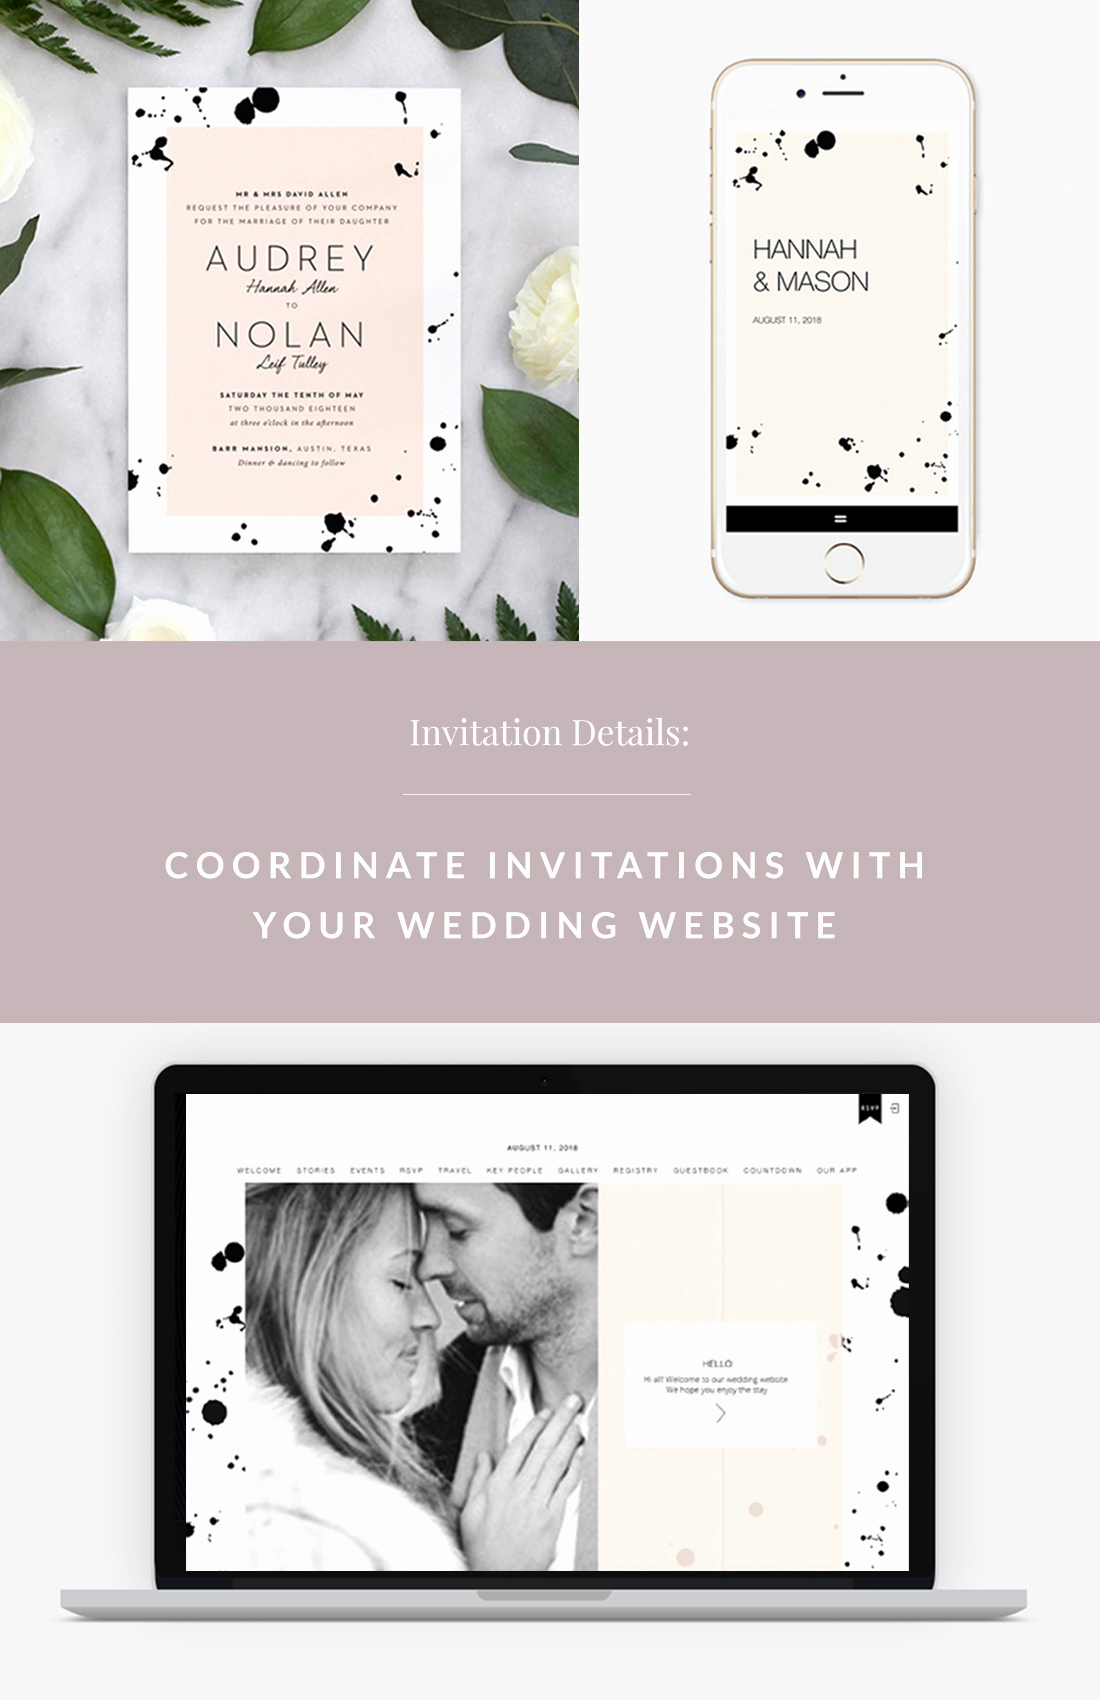 Best Wedding Invitation Sites Awesome Coordinate Invitations with Your Wedding Website with Fine